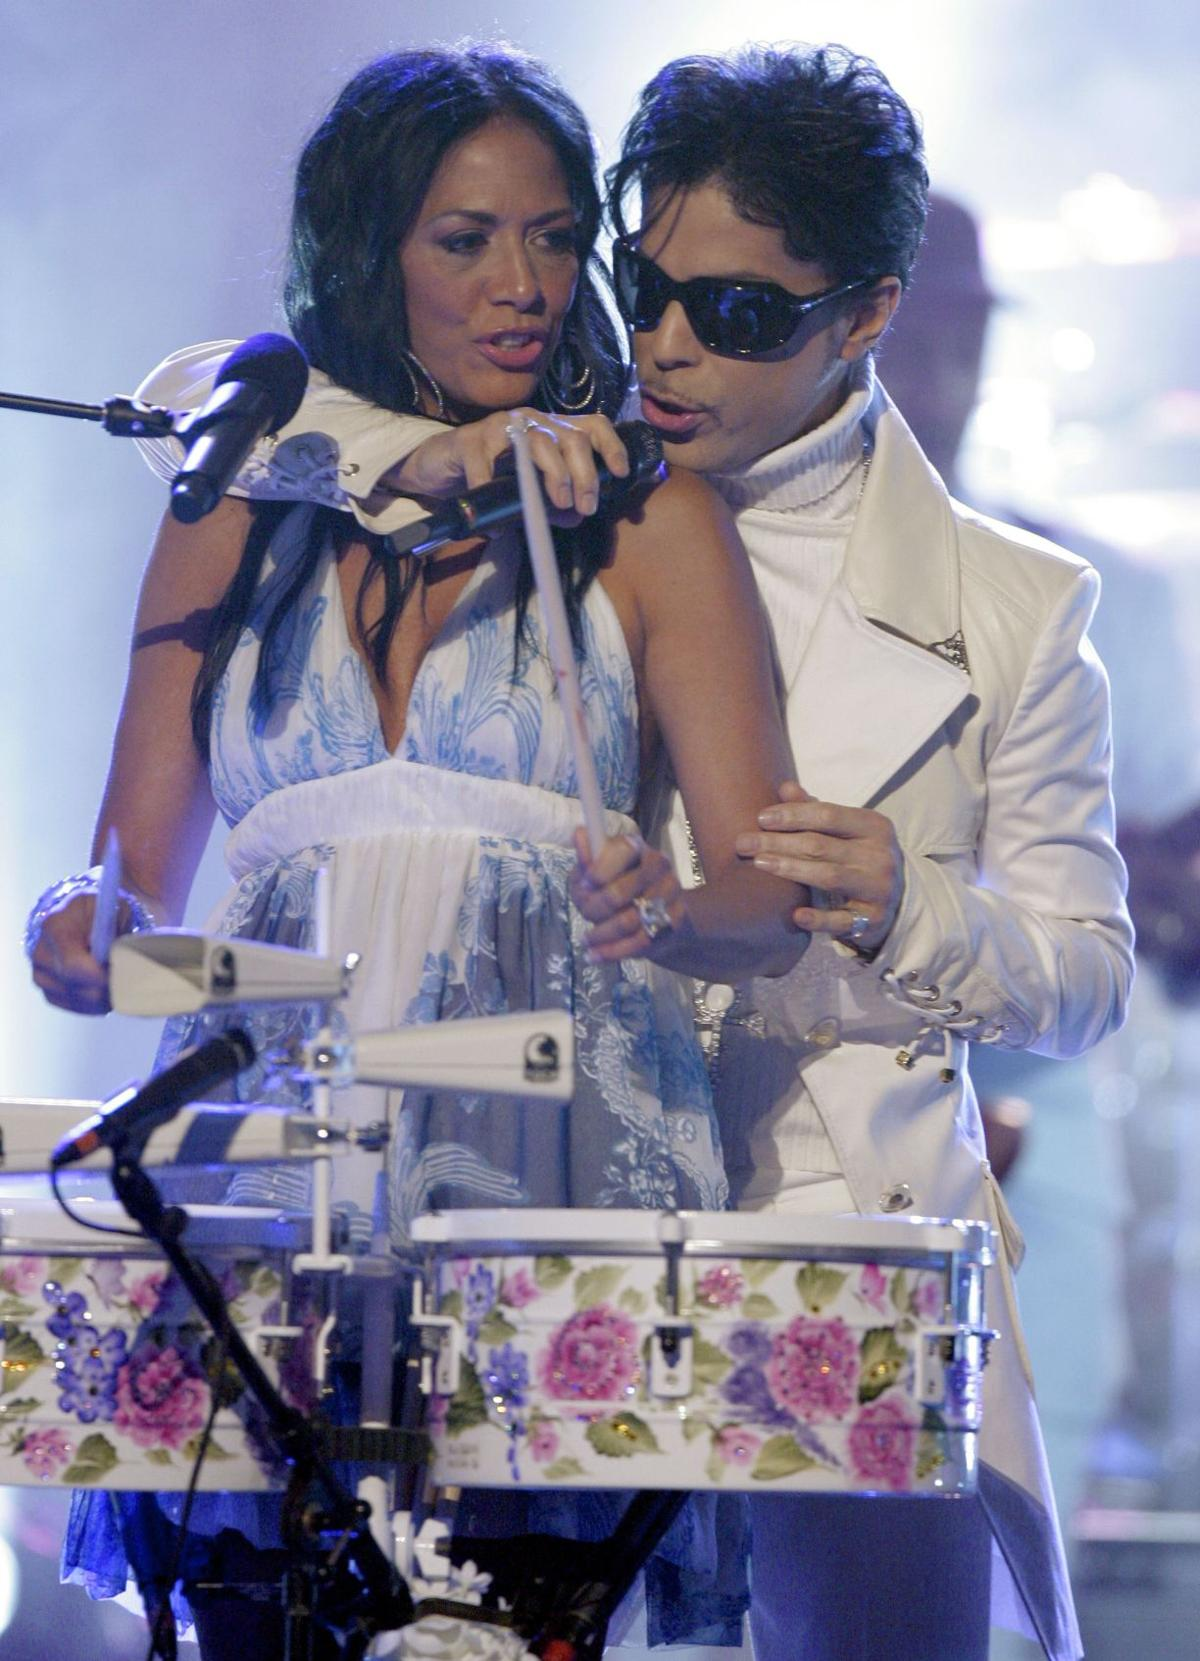 Prince was a one-man band and a friend to many others